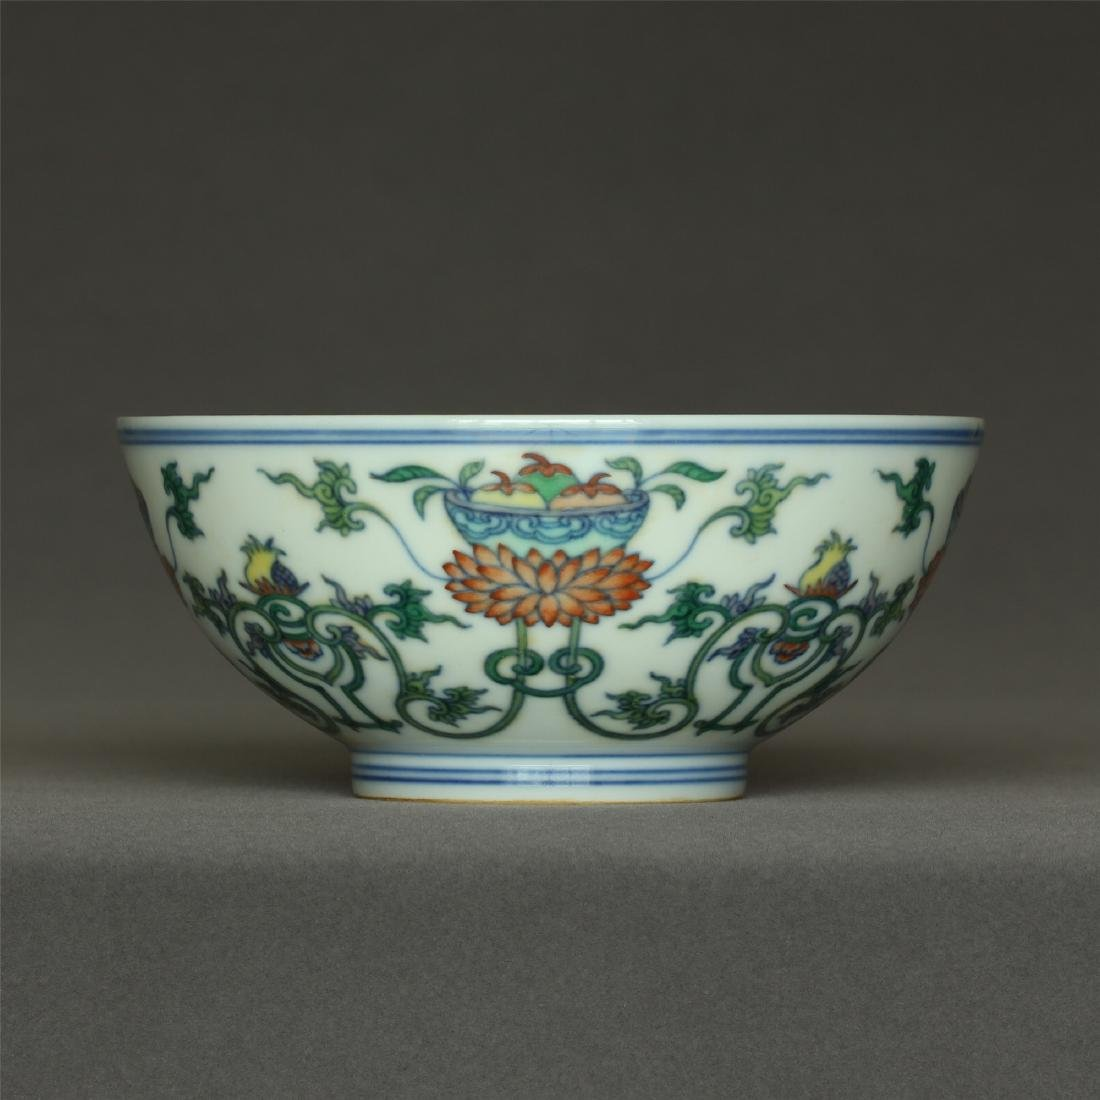 Doucai porcelain bowl of Qing Dynasty QianLong mark.